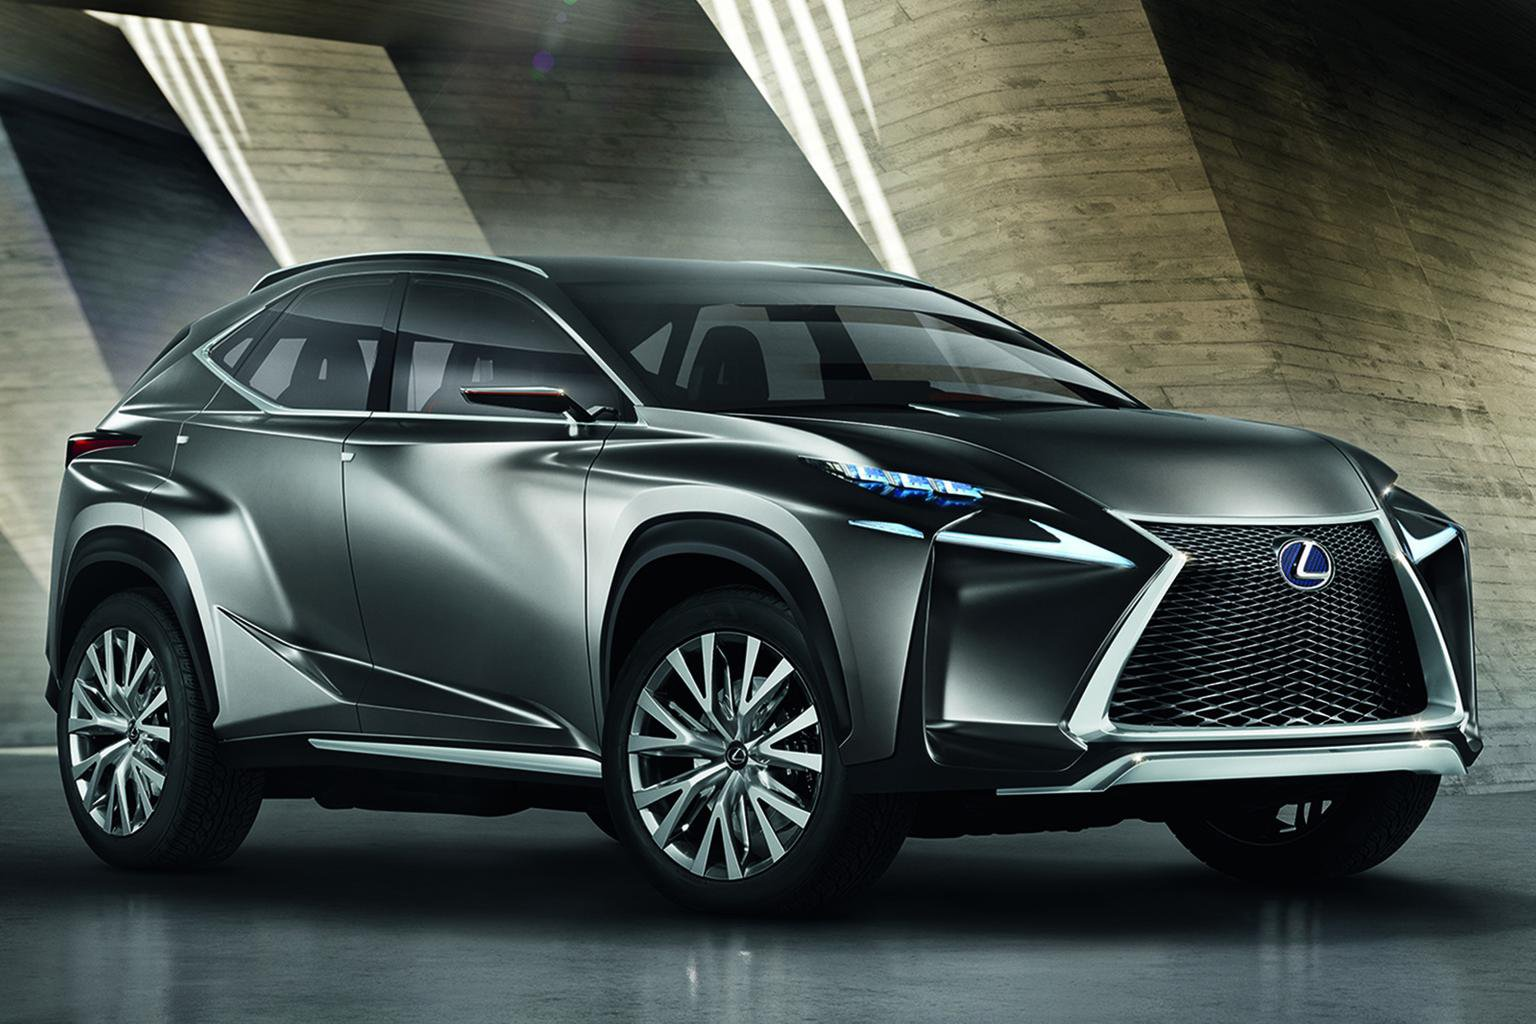 Lexus LF-NX crossover concept revealed